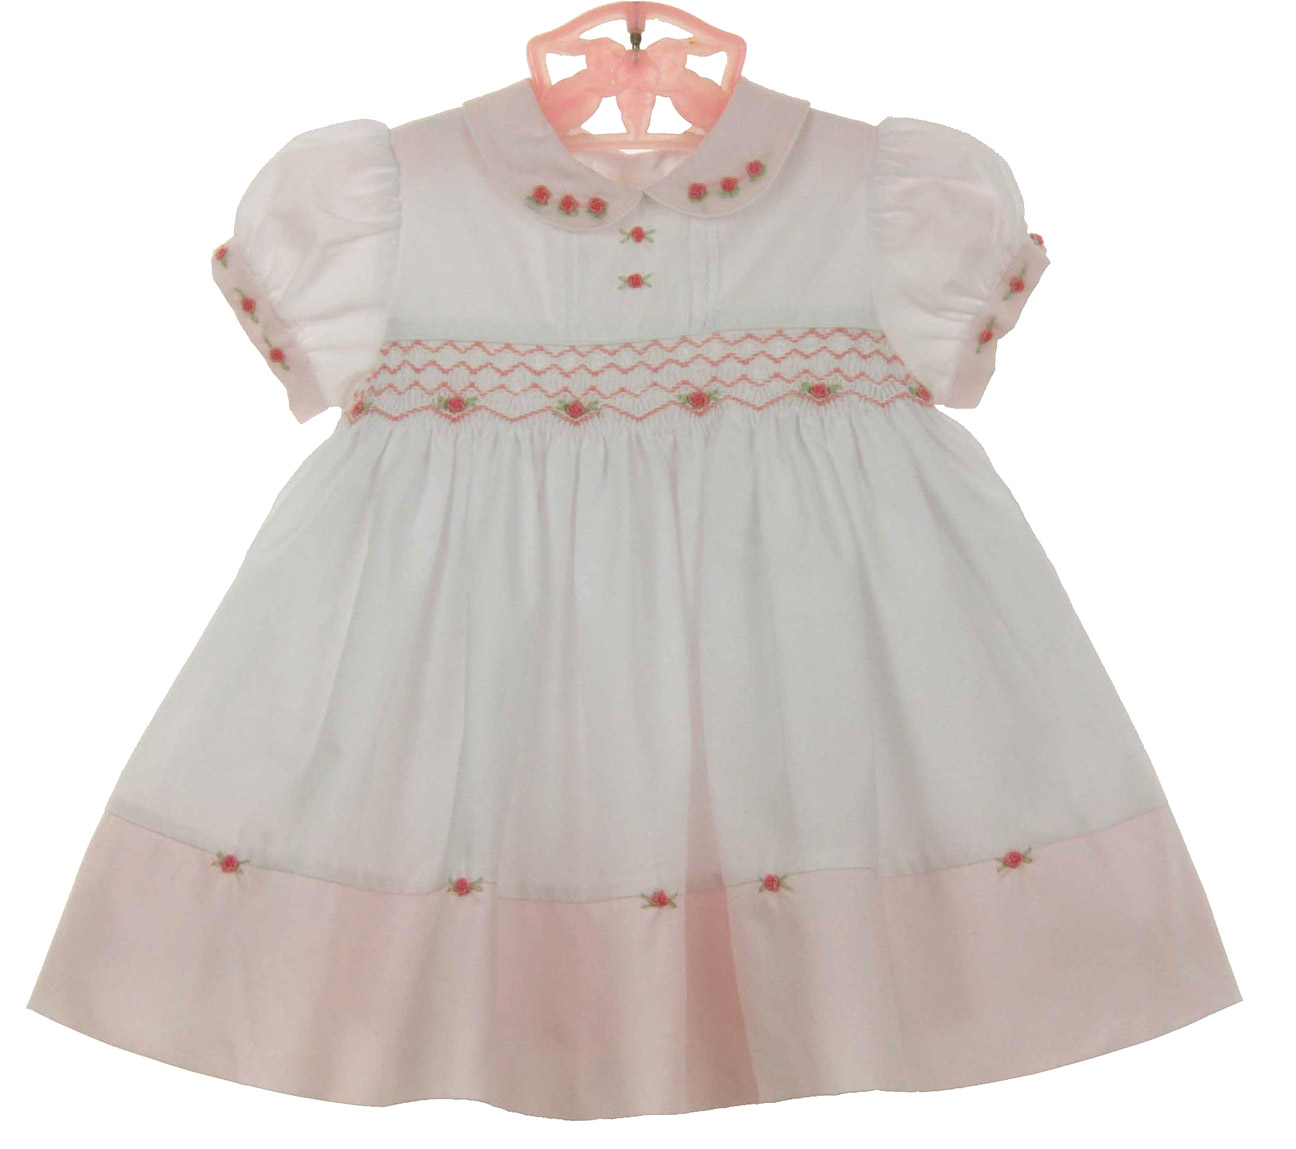 8d4a422c8 NEW Sarah Louise Vintage Style Pink and White Smocked Dress with  Embroidered Rosebuds